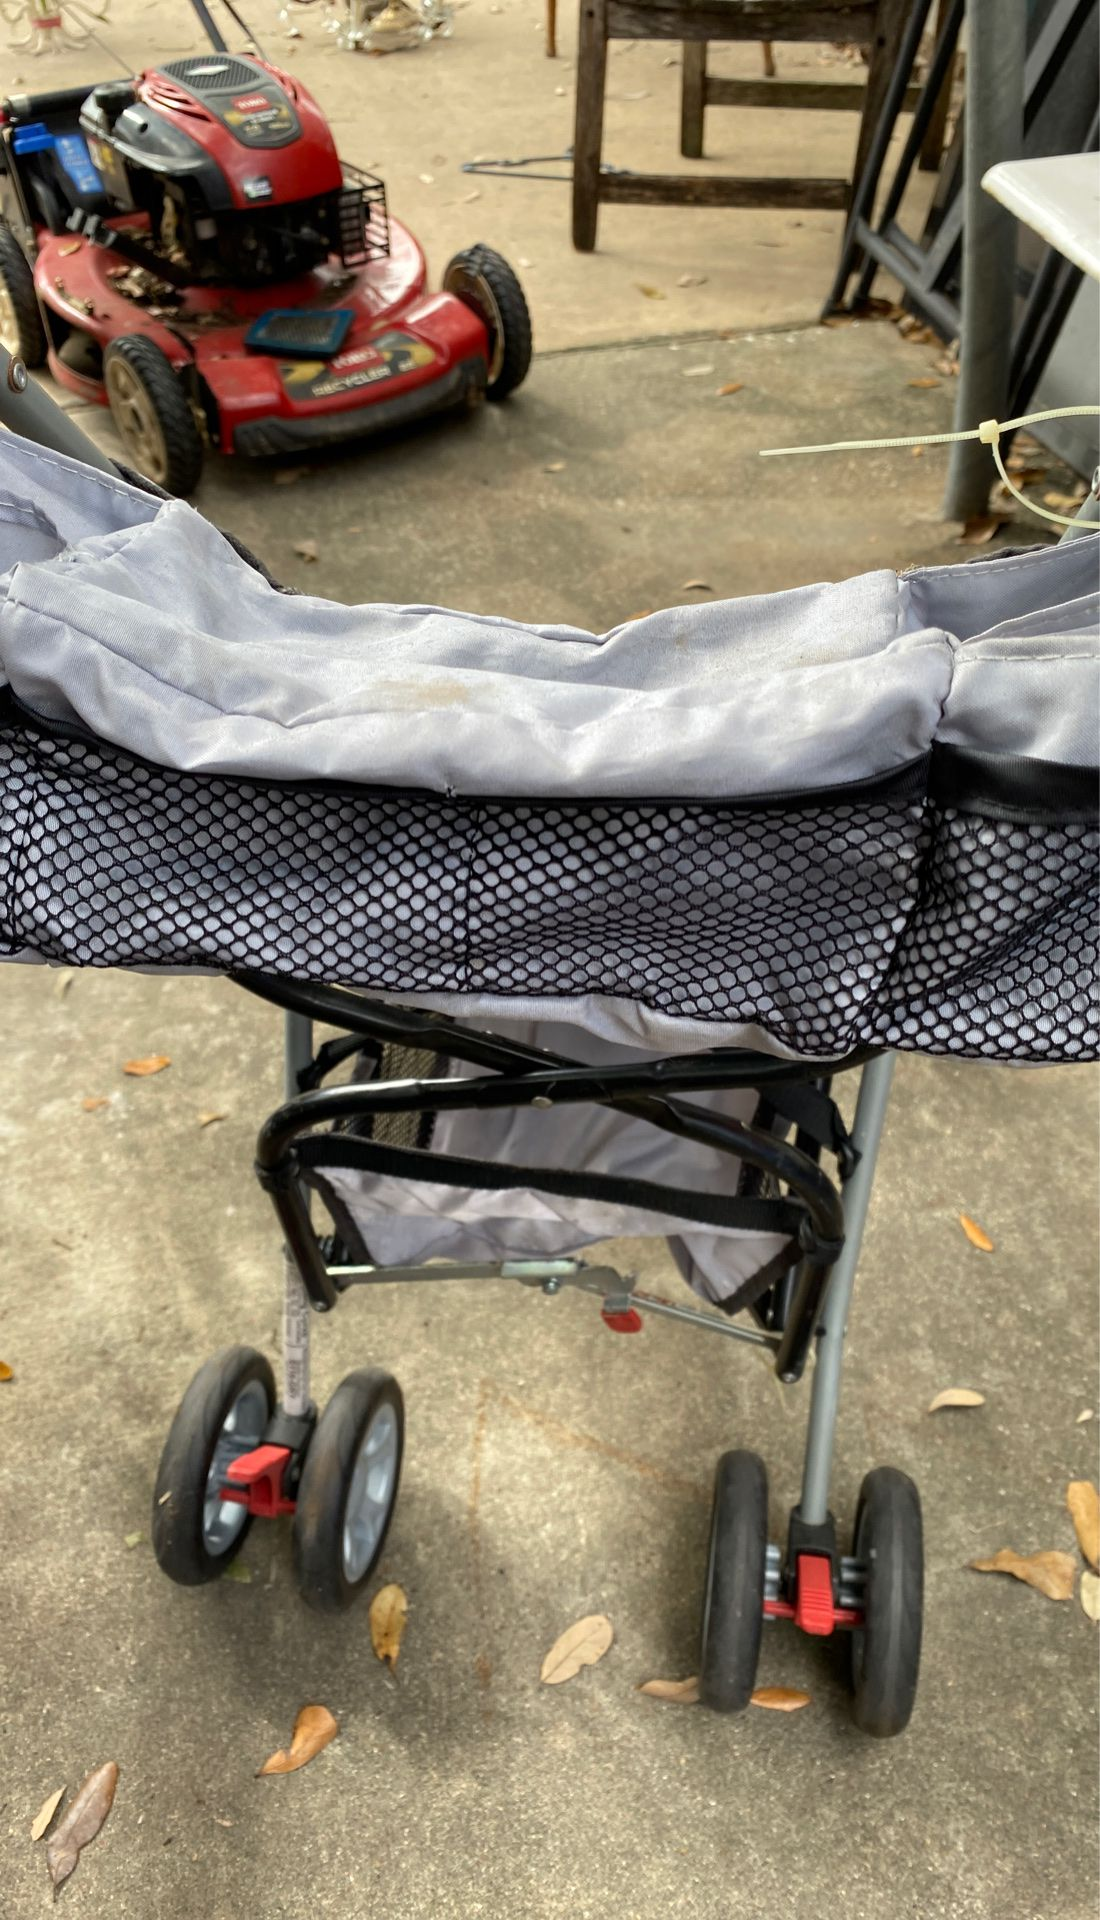 First Years Umbrella Stroller rated #50 lbs